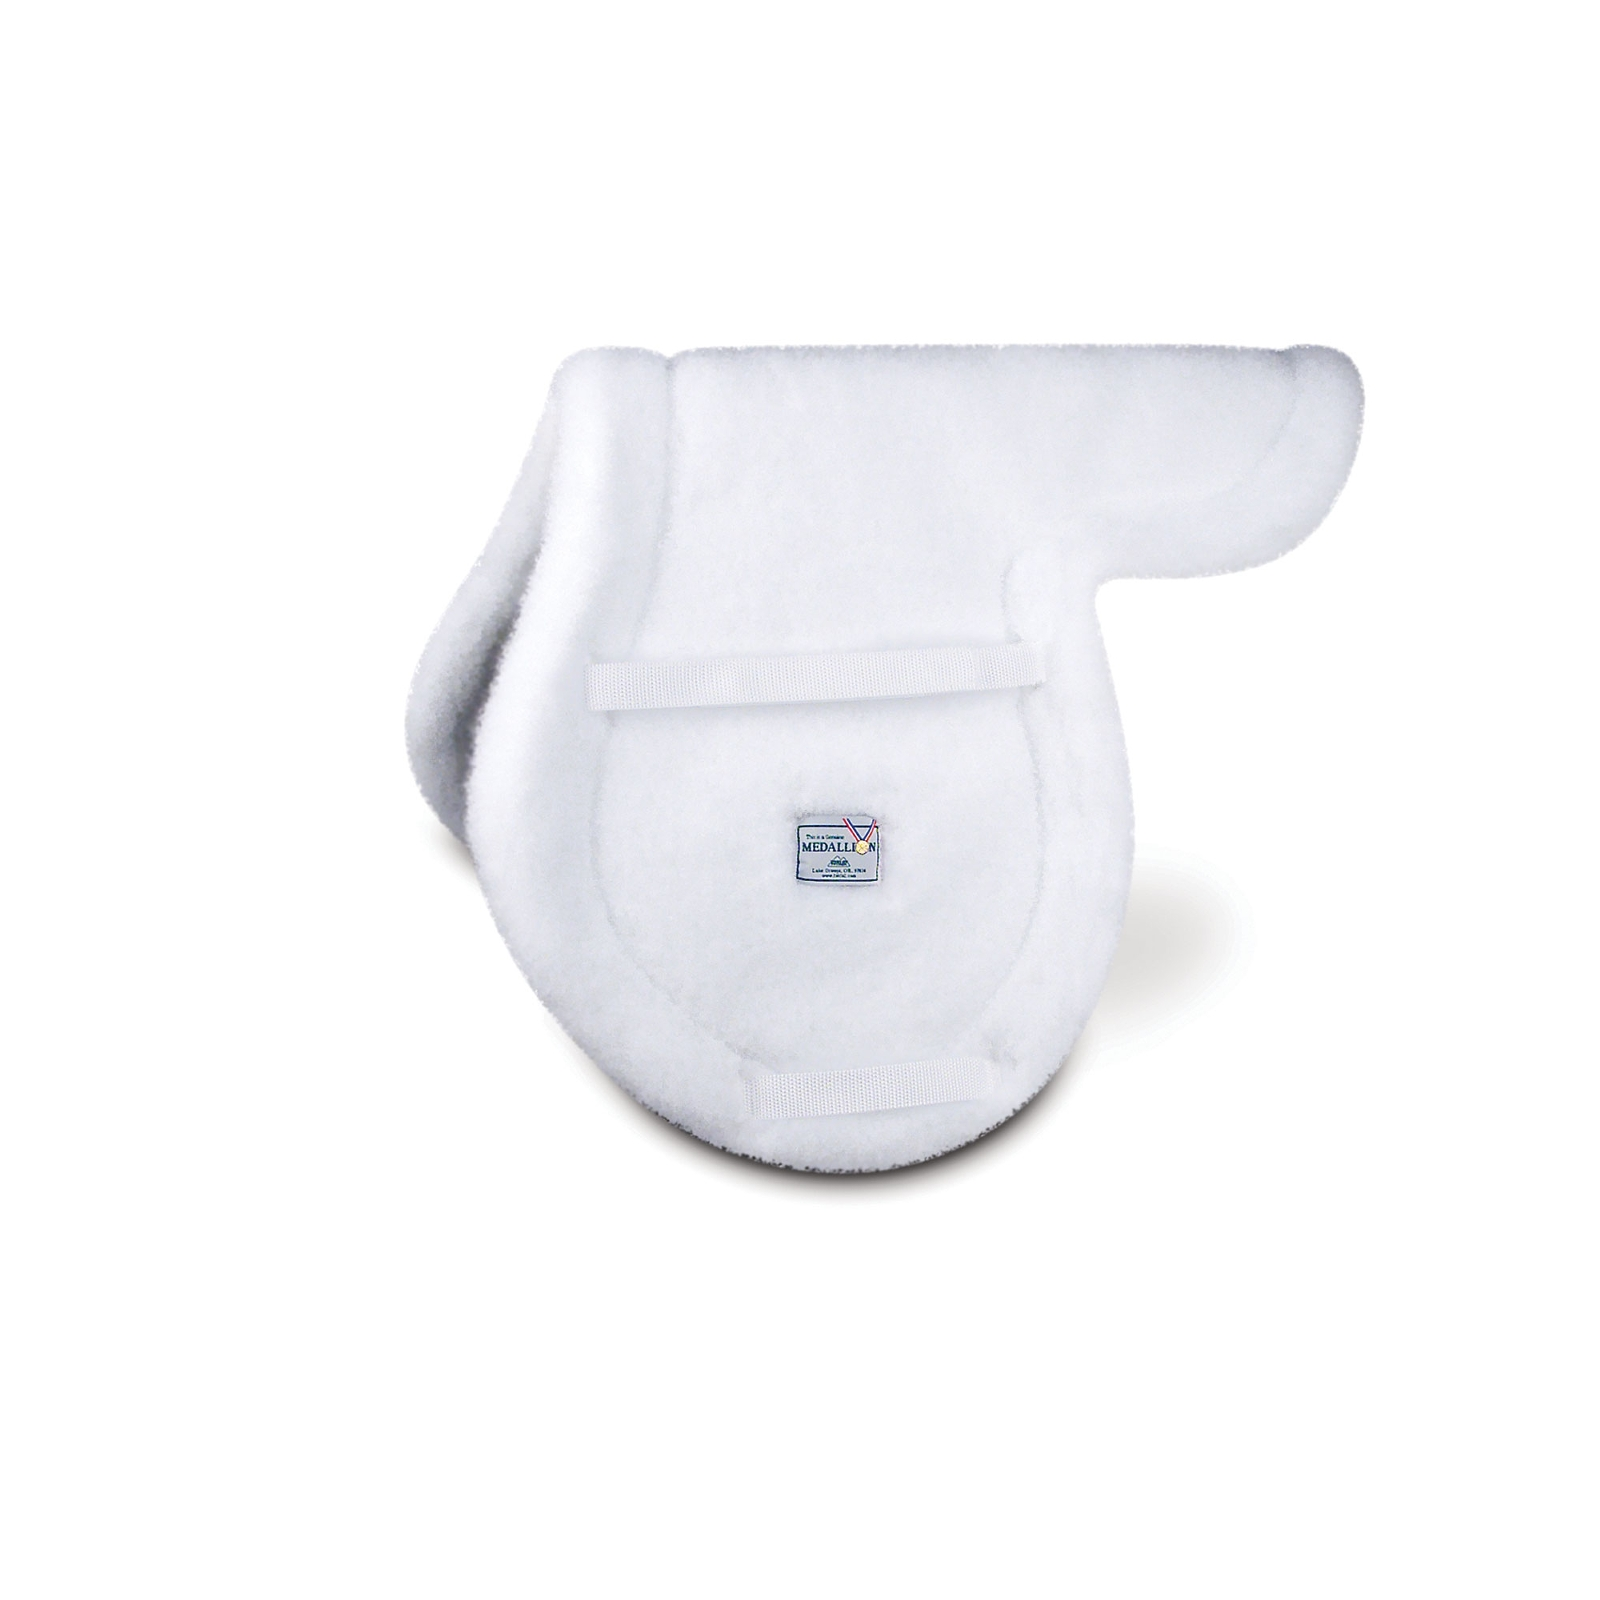 Toklat Medallion Child's Close Contact Pad